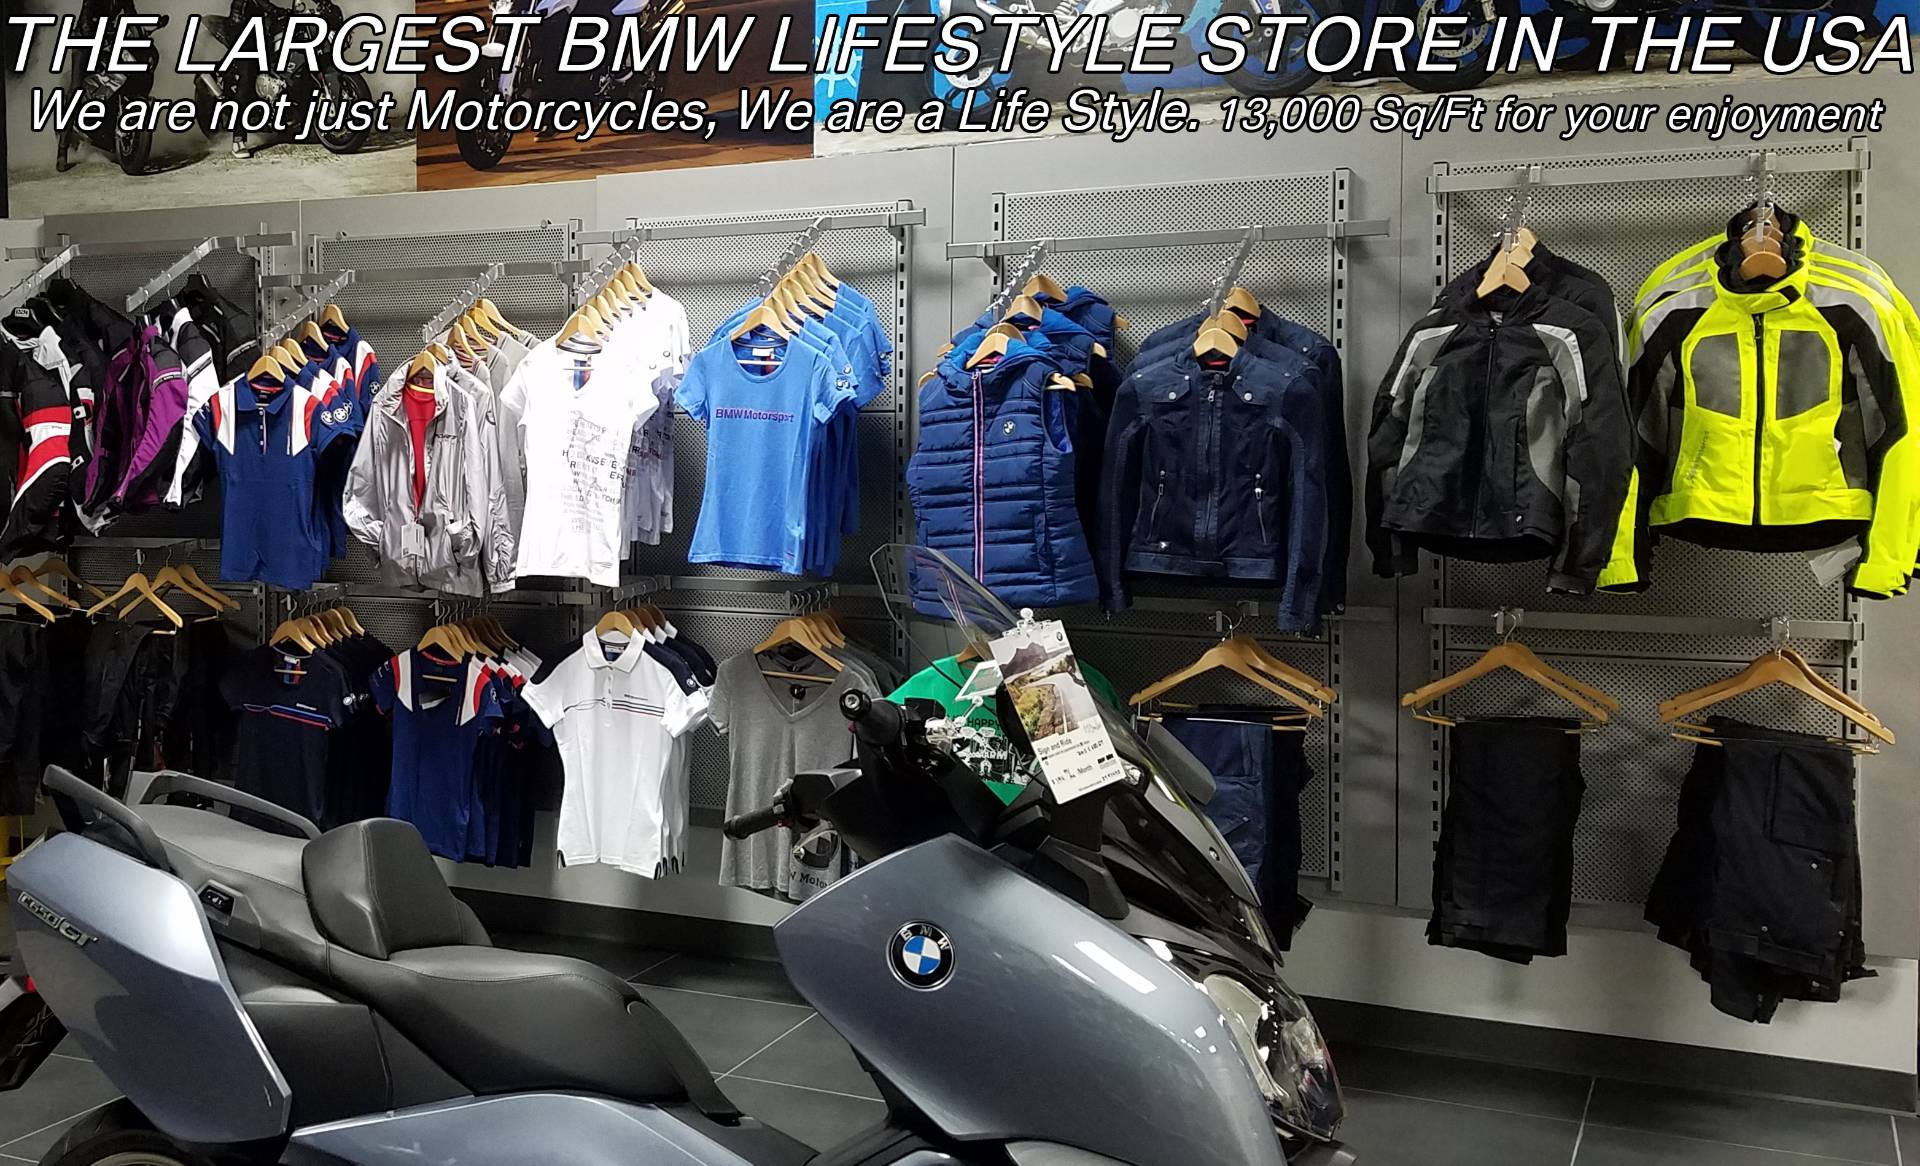 Used 2011 BMW R 1200 GSA For Sale, Pre owned BMW R 1200GSA For Sale, BMW Motorcycle R1200GSA, BMW Motorcycles of Miami, Motorcycles of Miami, Motorcycles Miami - Photo 29